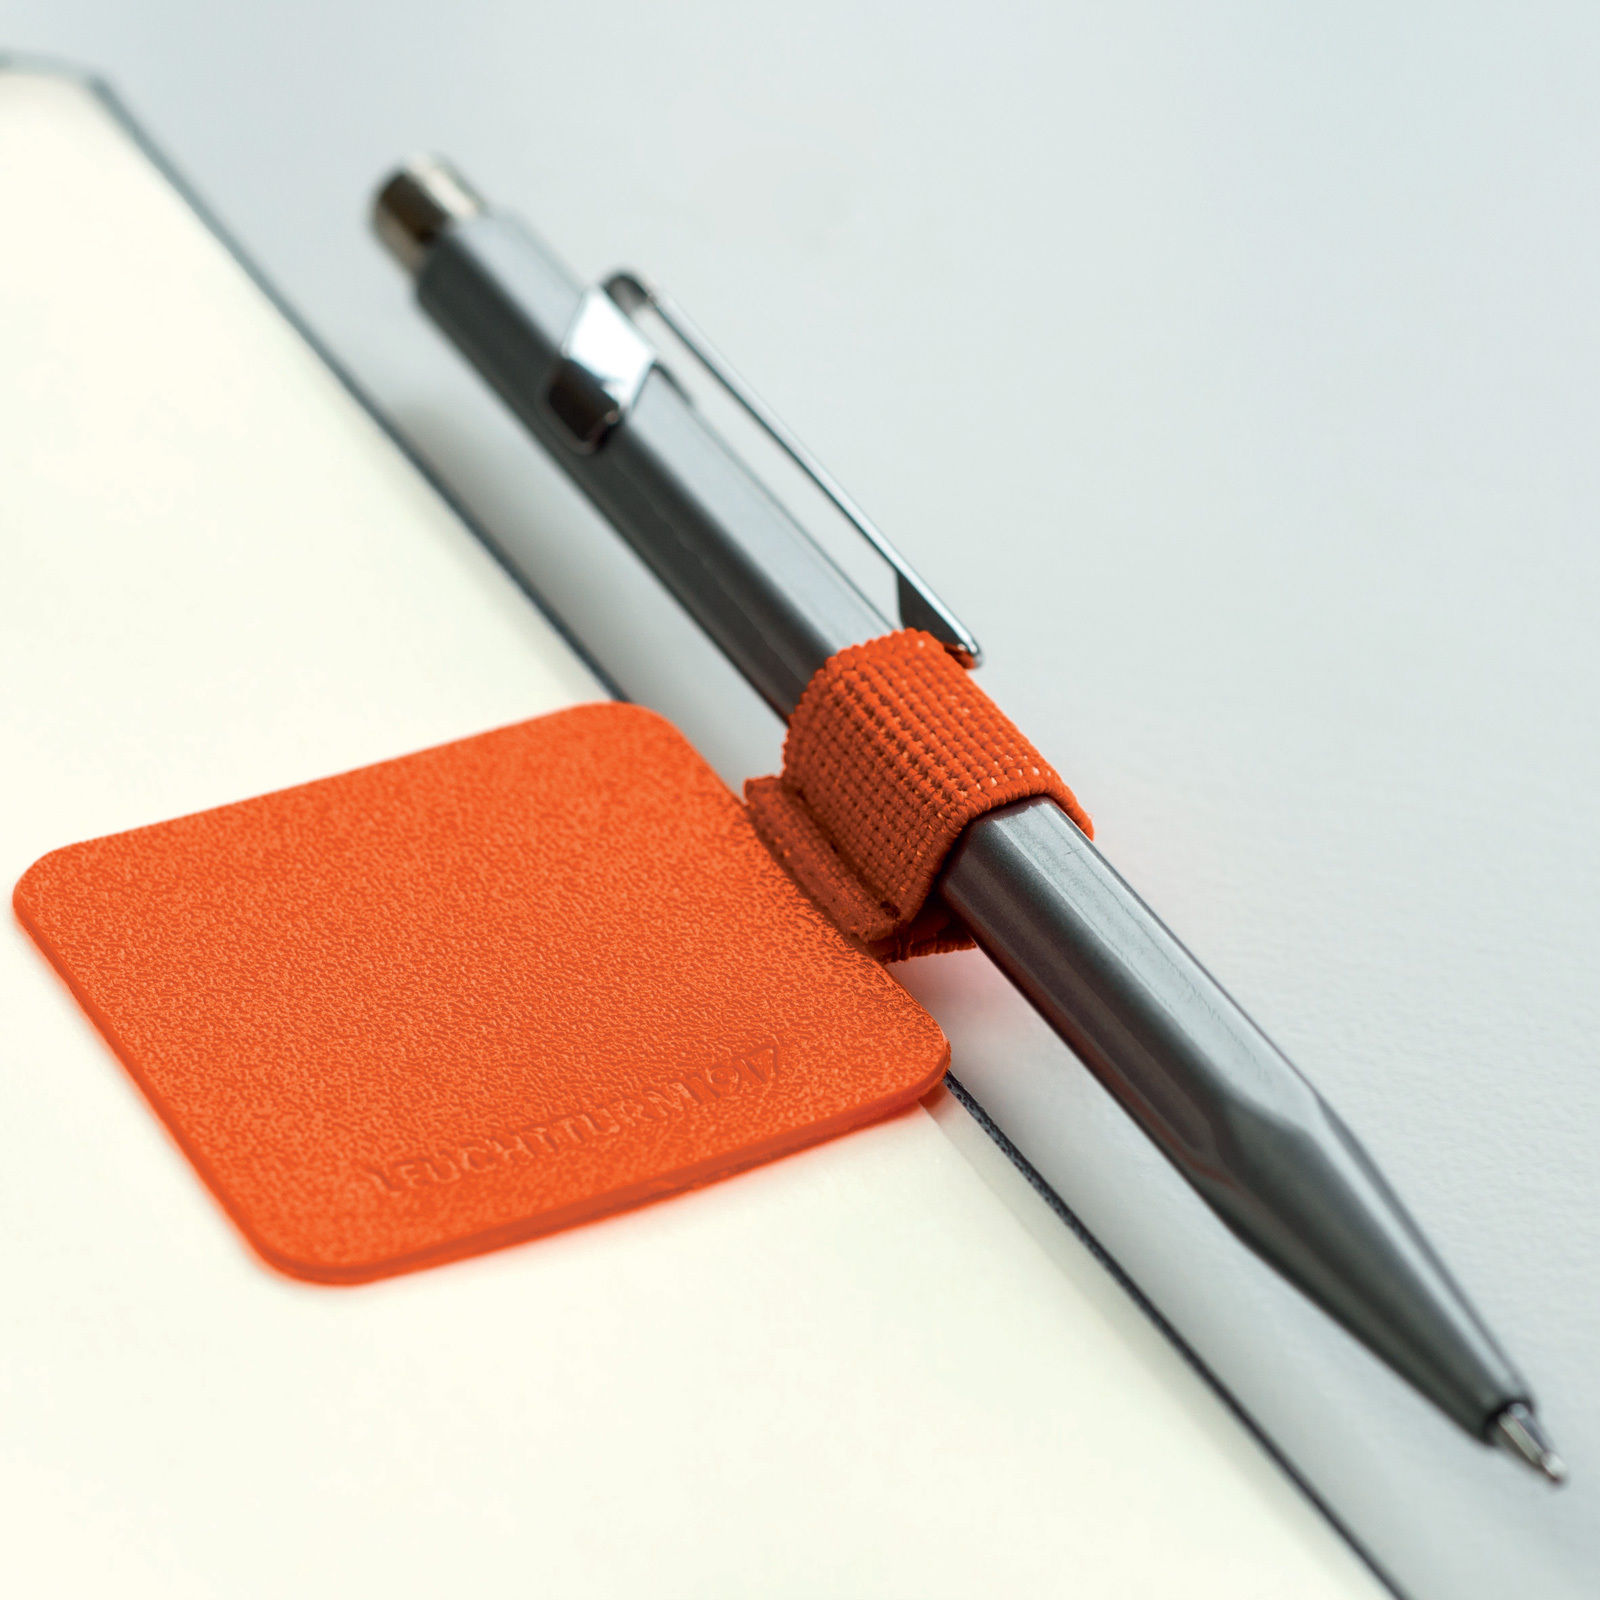 Elasticated-Pen-Loop-by-Leuchtturm1917-Sticks-to-Notebook-Choose-Colour-152550425608-4